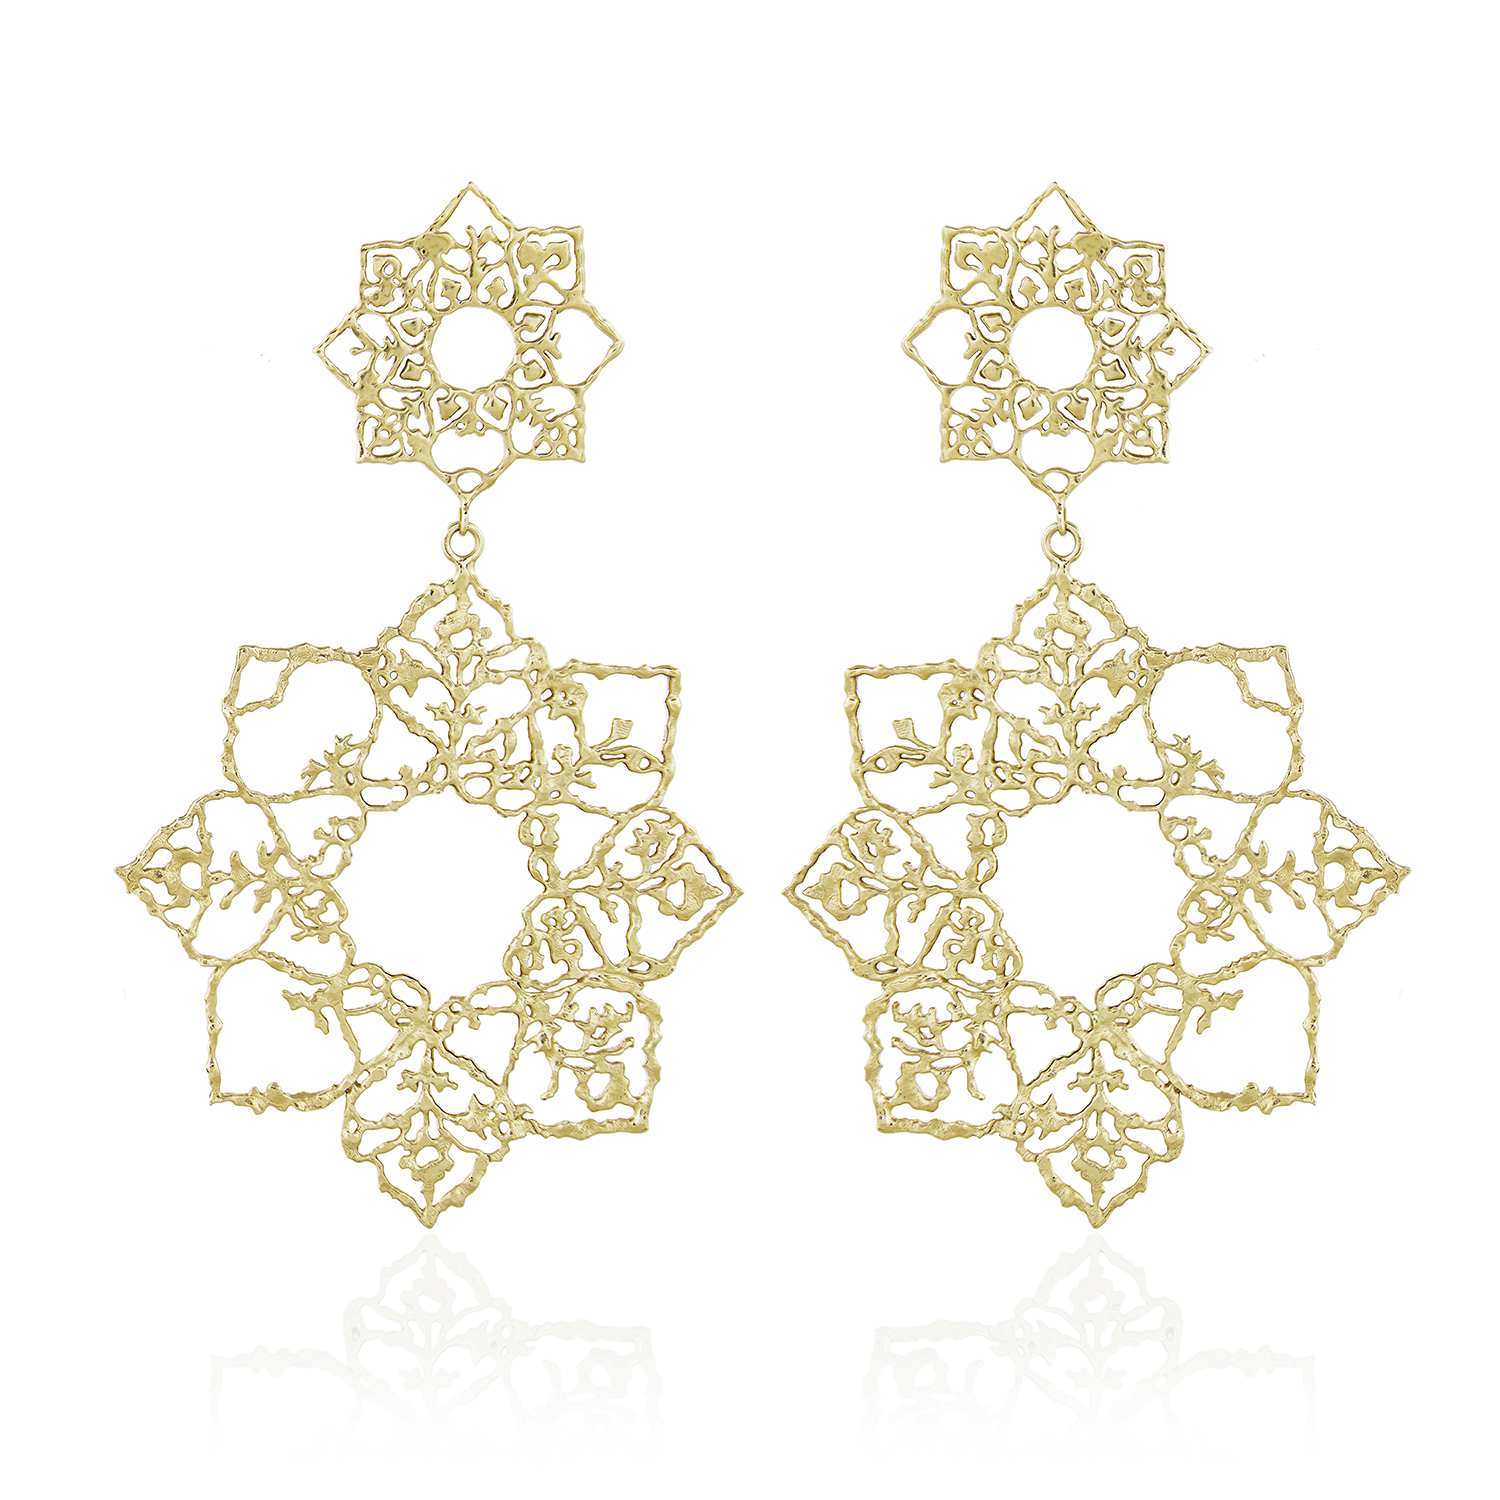 Natalie Perry Jewellery, Double Mandala Earrings